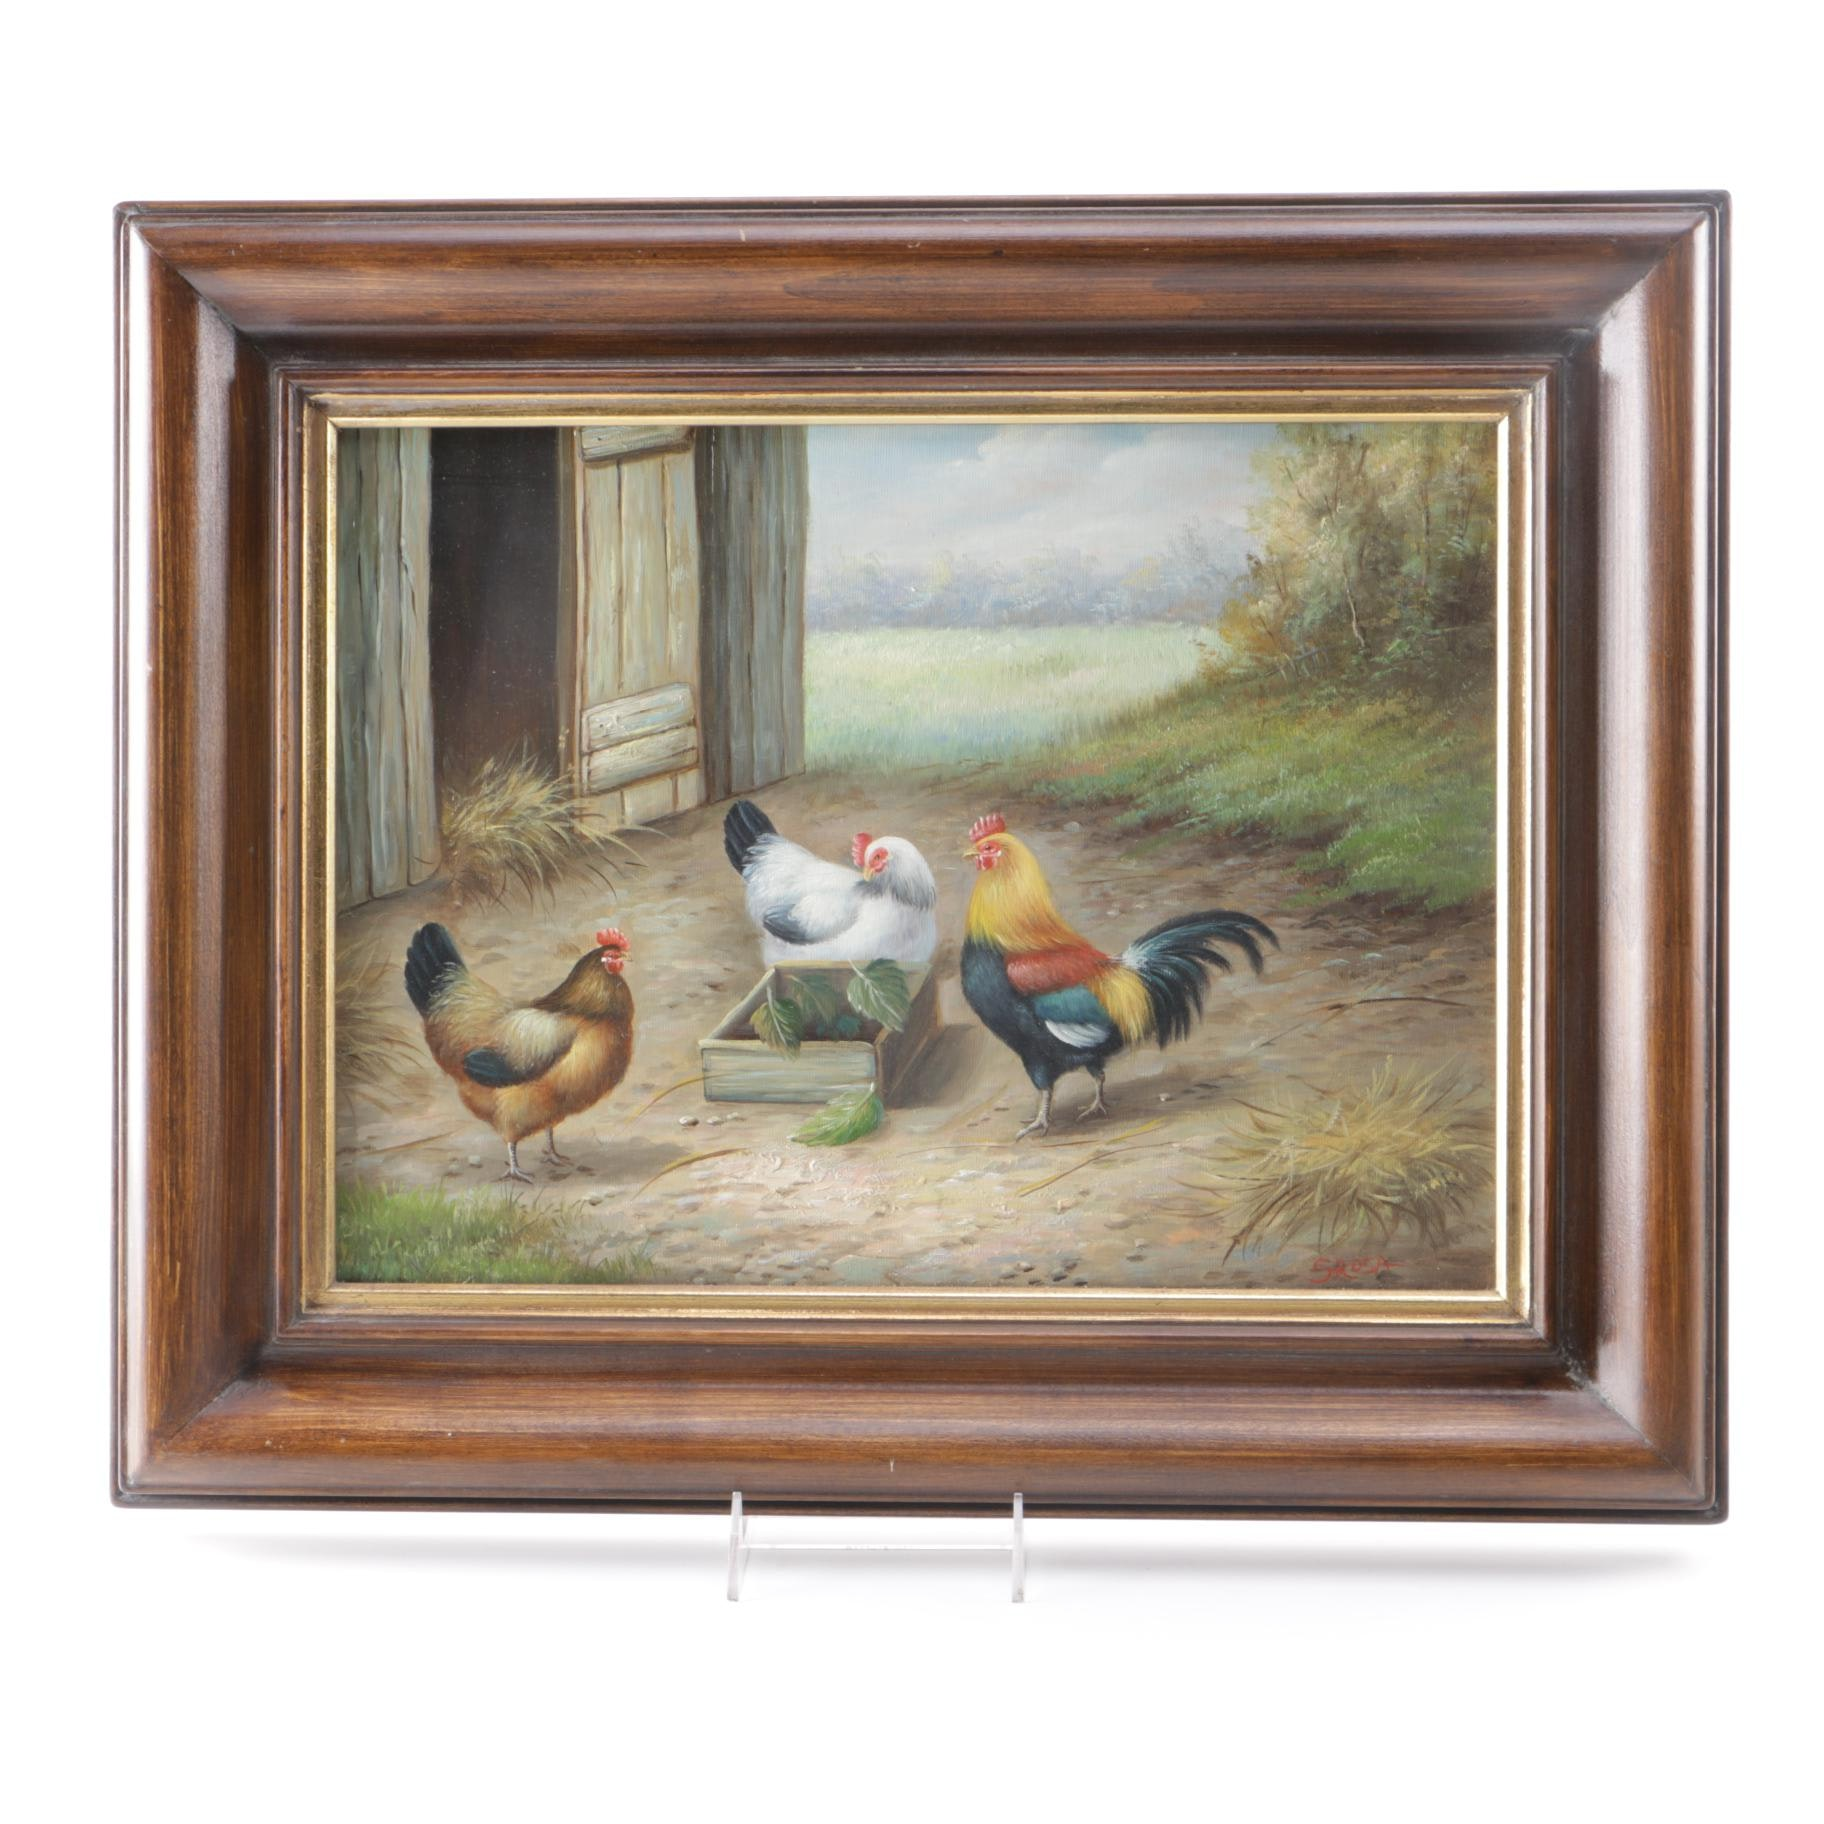 S. Rosa Original Oil on Canvas Pastoral Landscape with Chickens